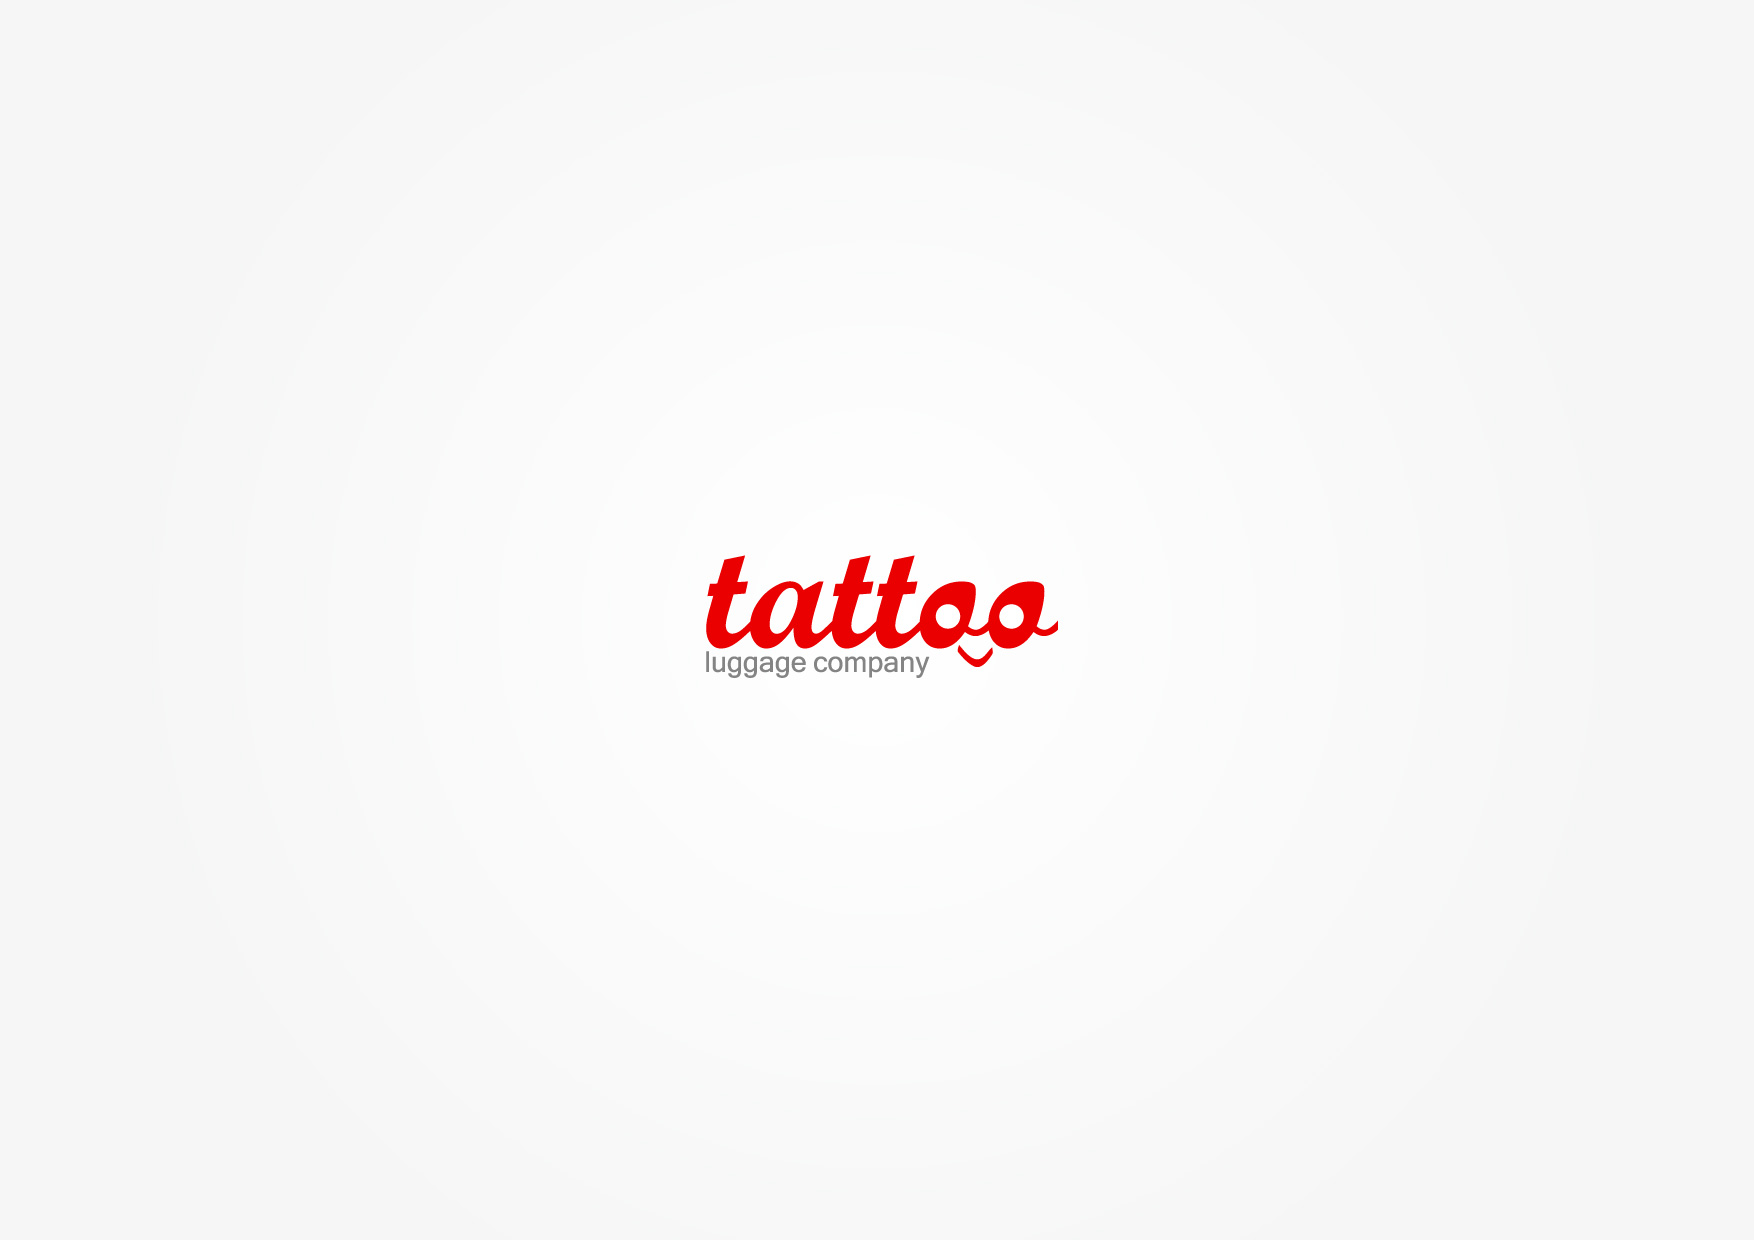 Logo Design by Osi Indra - Entry No. 14 in the Logo Design Contest Artistic Logo Design for Tattoo Luggage Company.